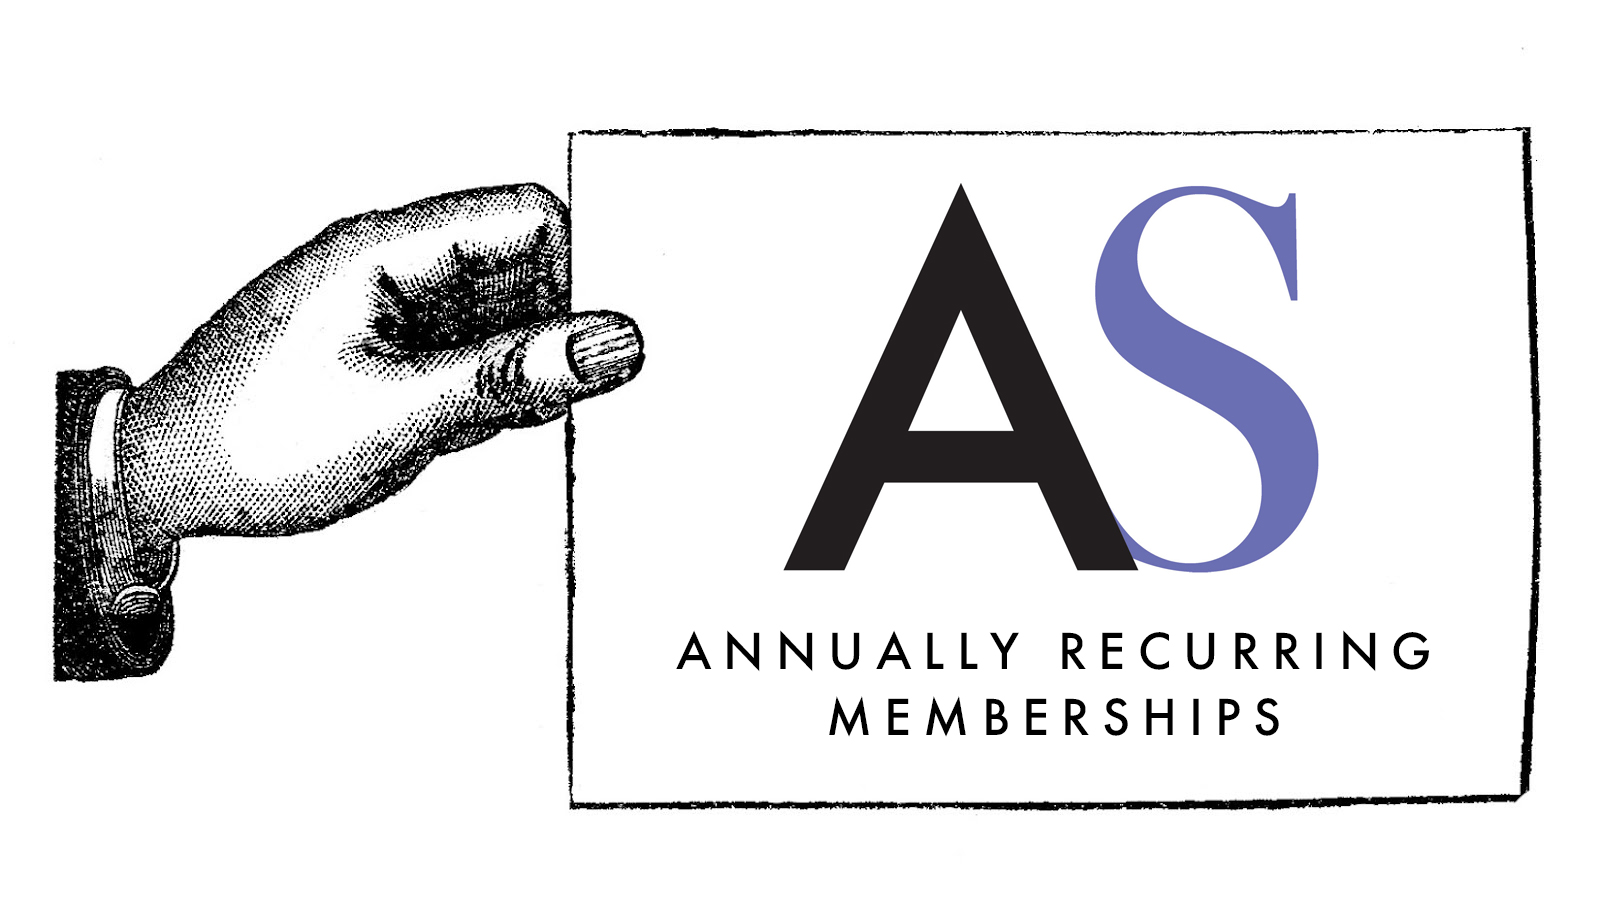 Annually Recurring Memberships